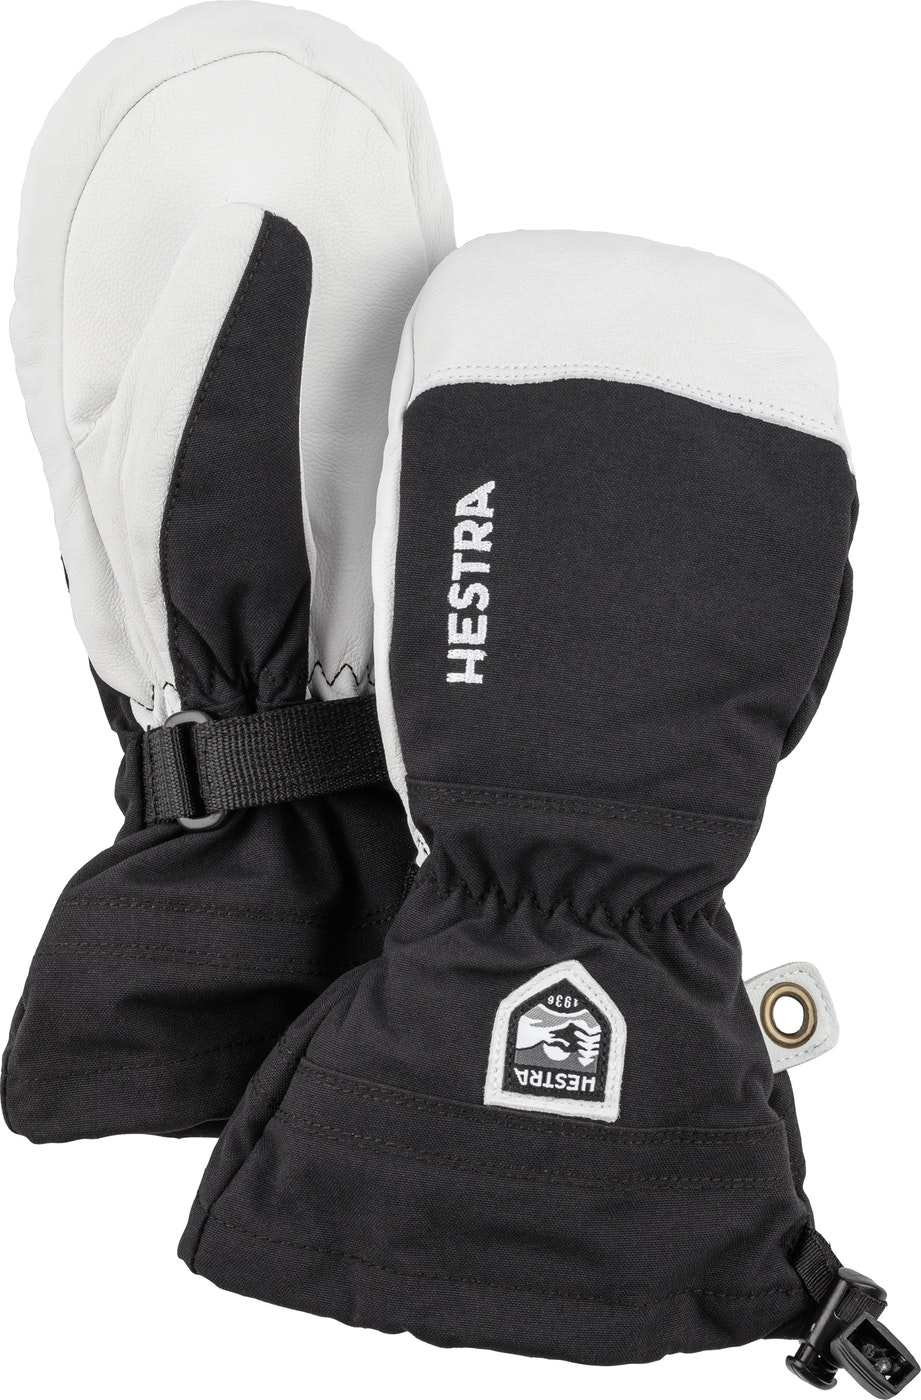 Hestra Army Leather Heli ski Jr - Mitt